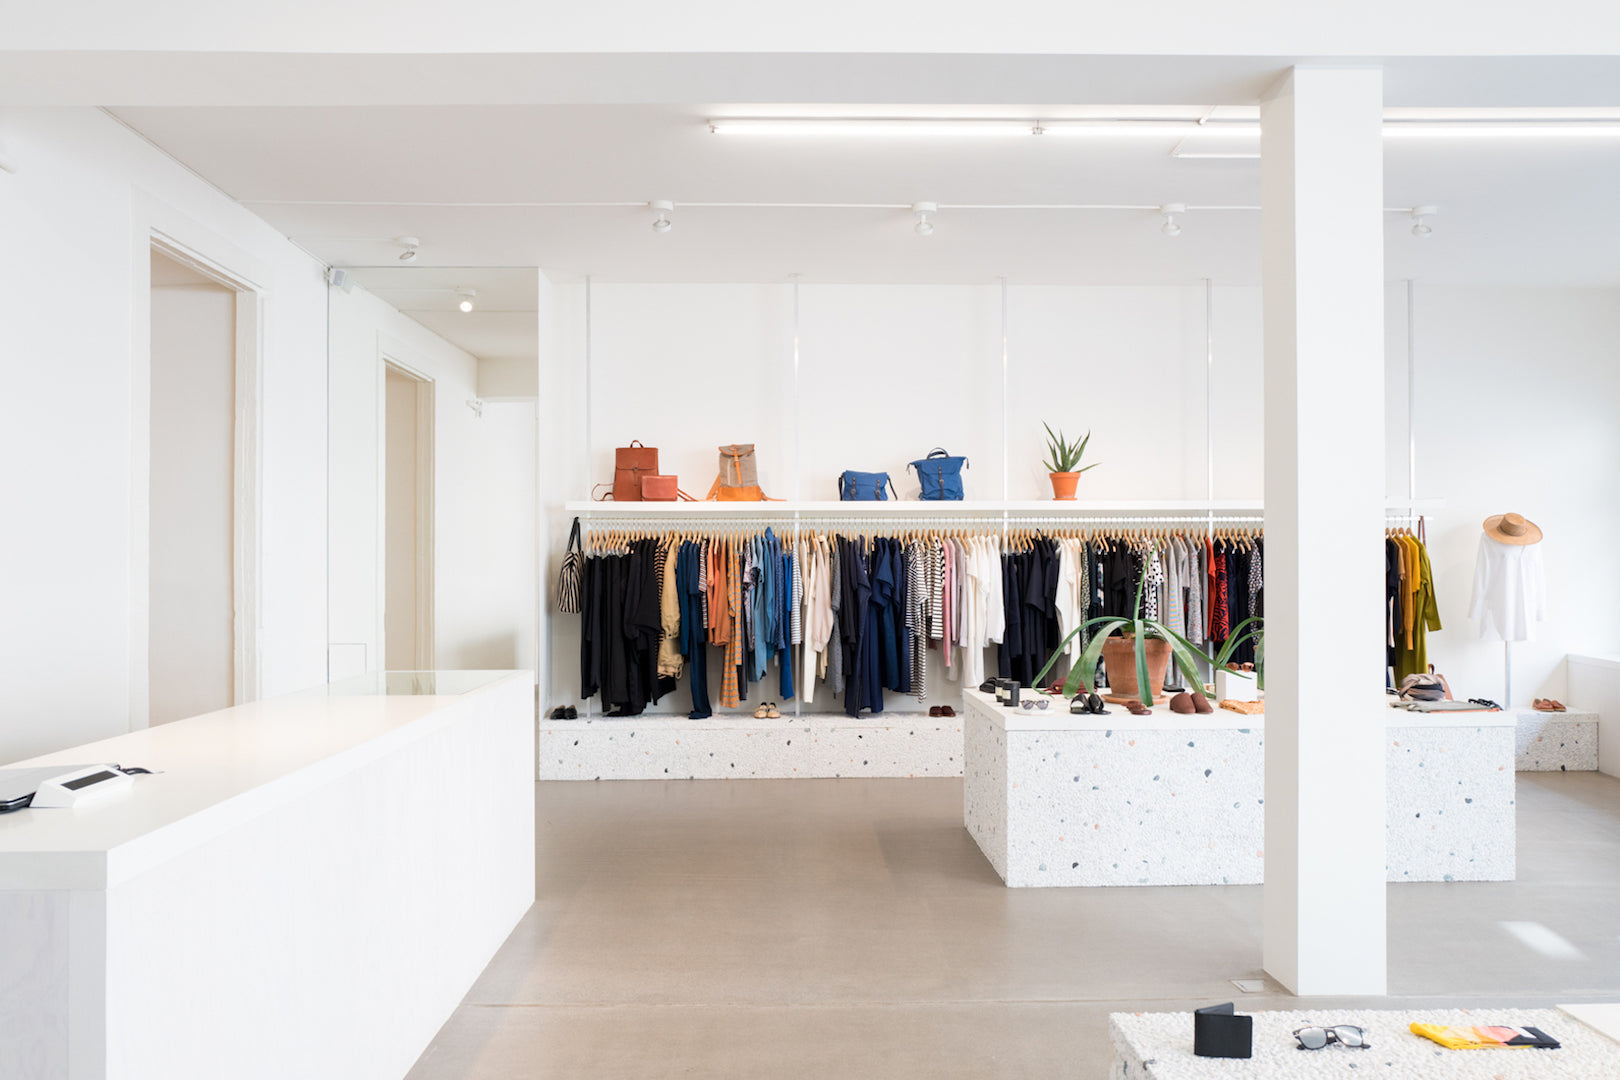 New stockist: OOID Store, Switzerland